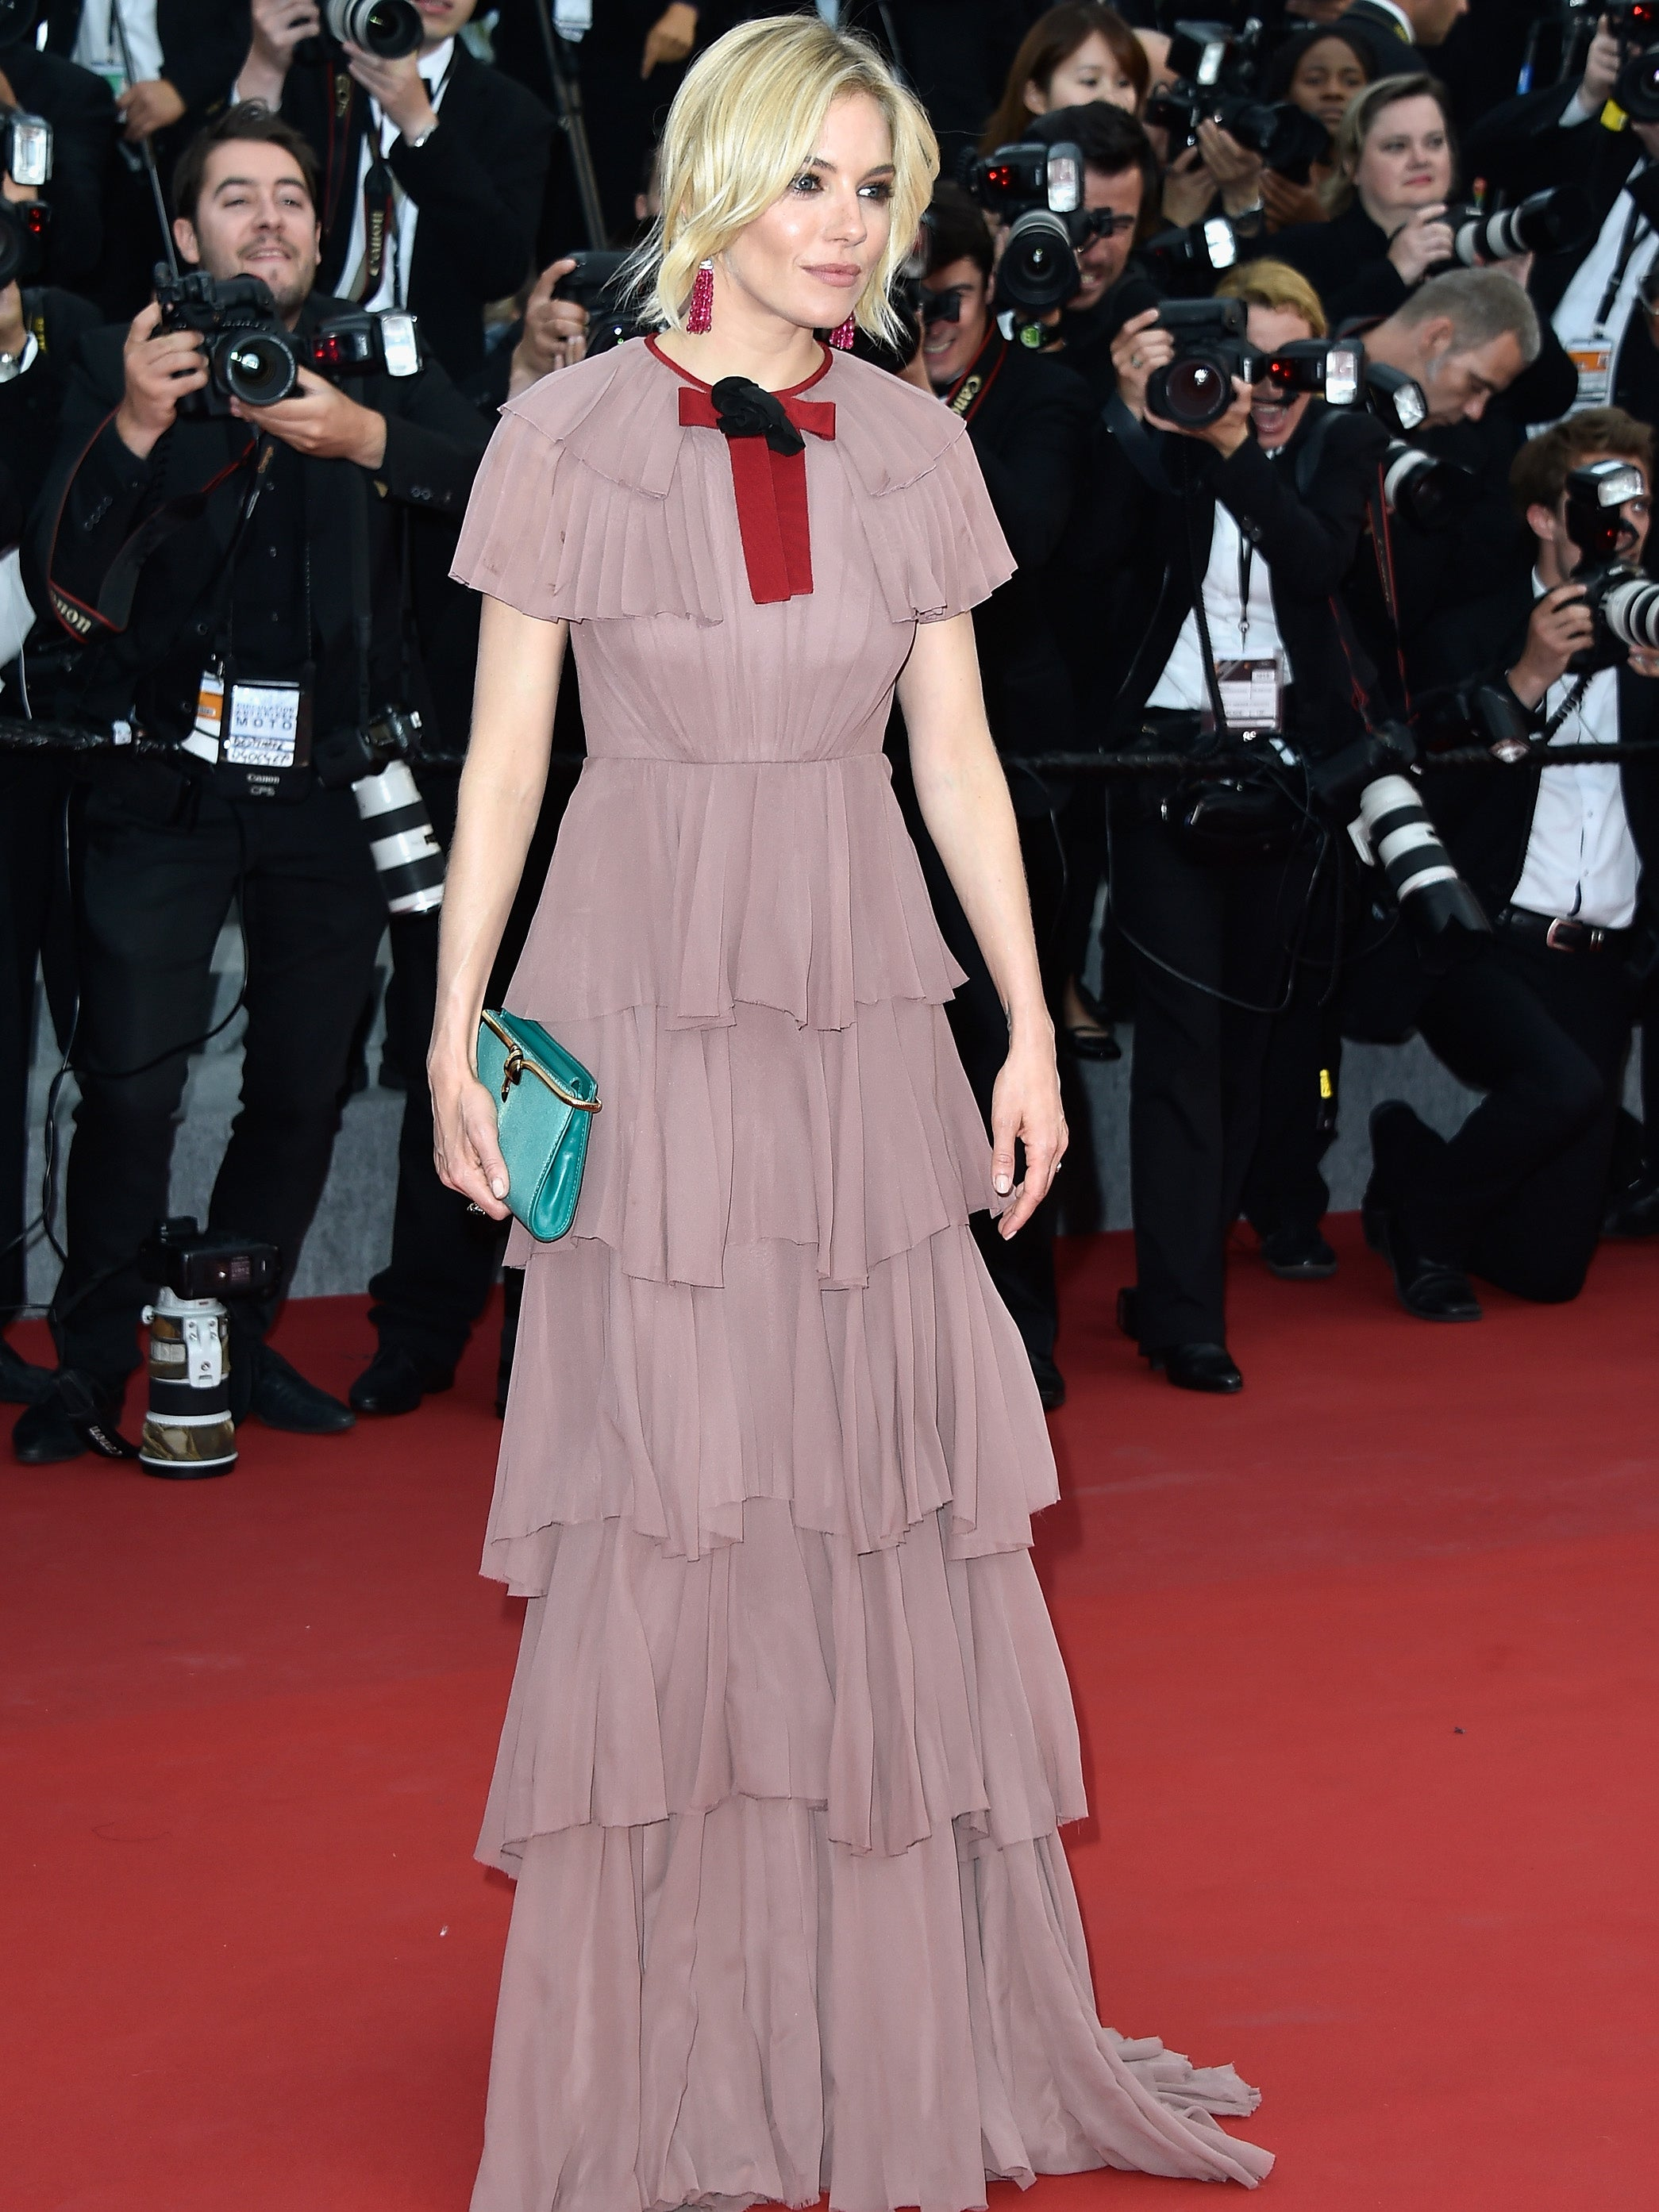 Sun, sex' and Prada at the Cannes Film Festival pictures